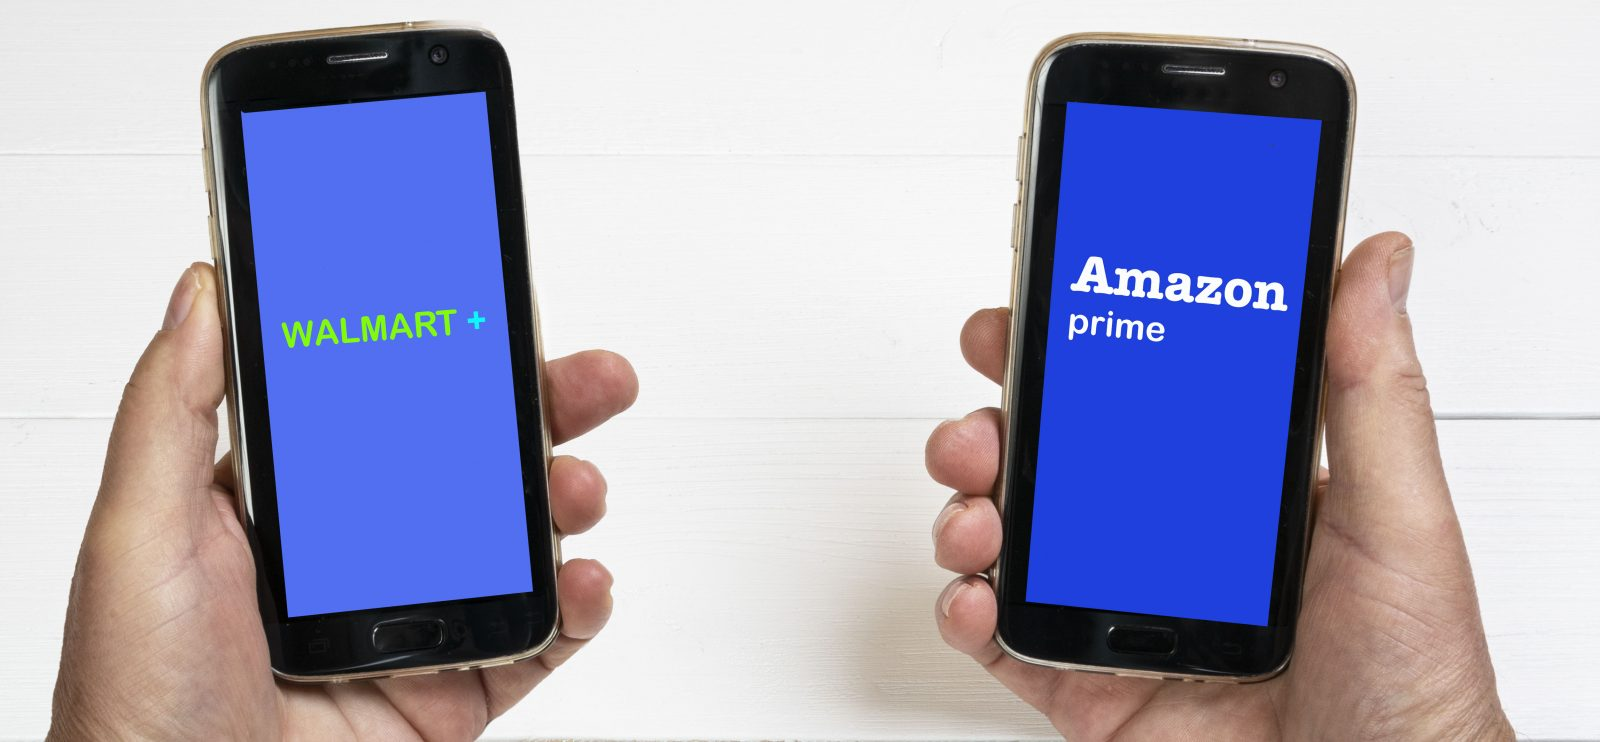 Amazon Prime vs. Walmart Plus—who will win?